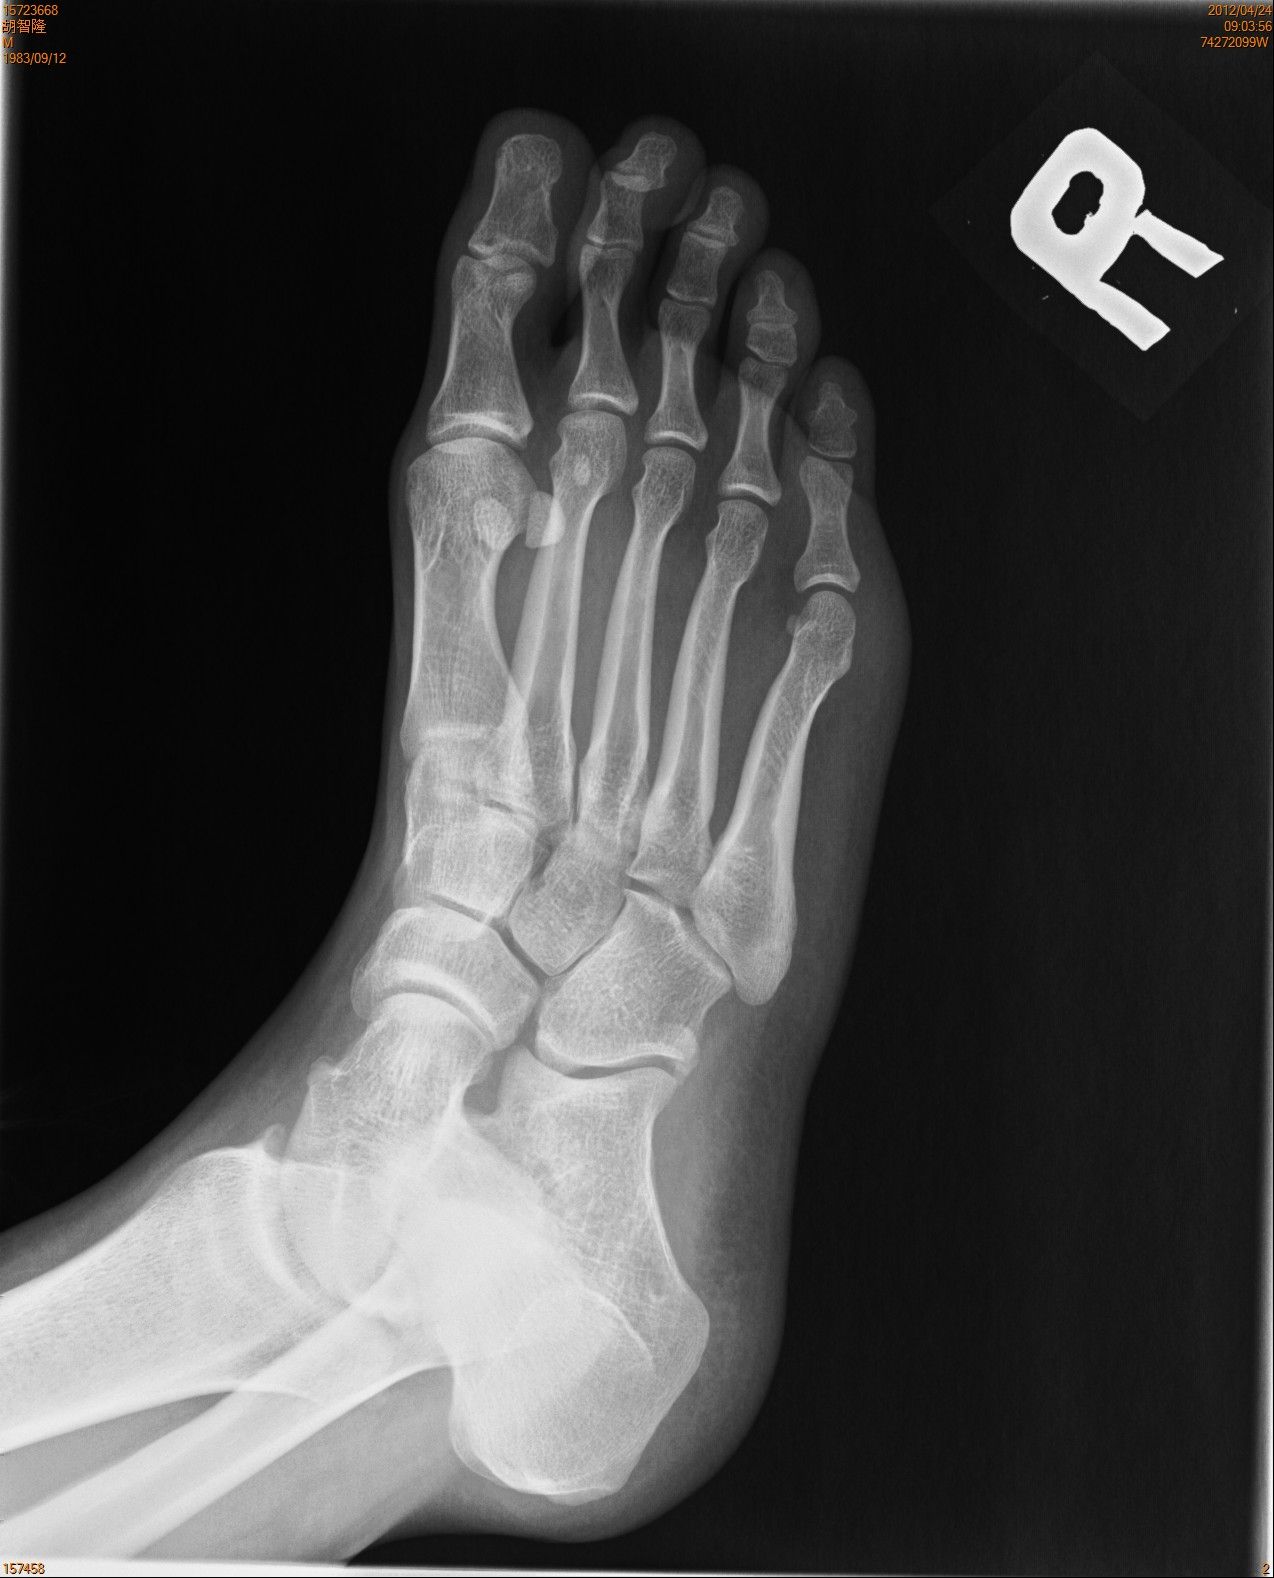 Download image N...Xray Of Childs Foot